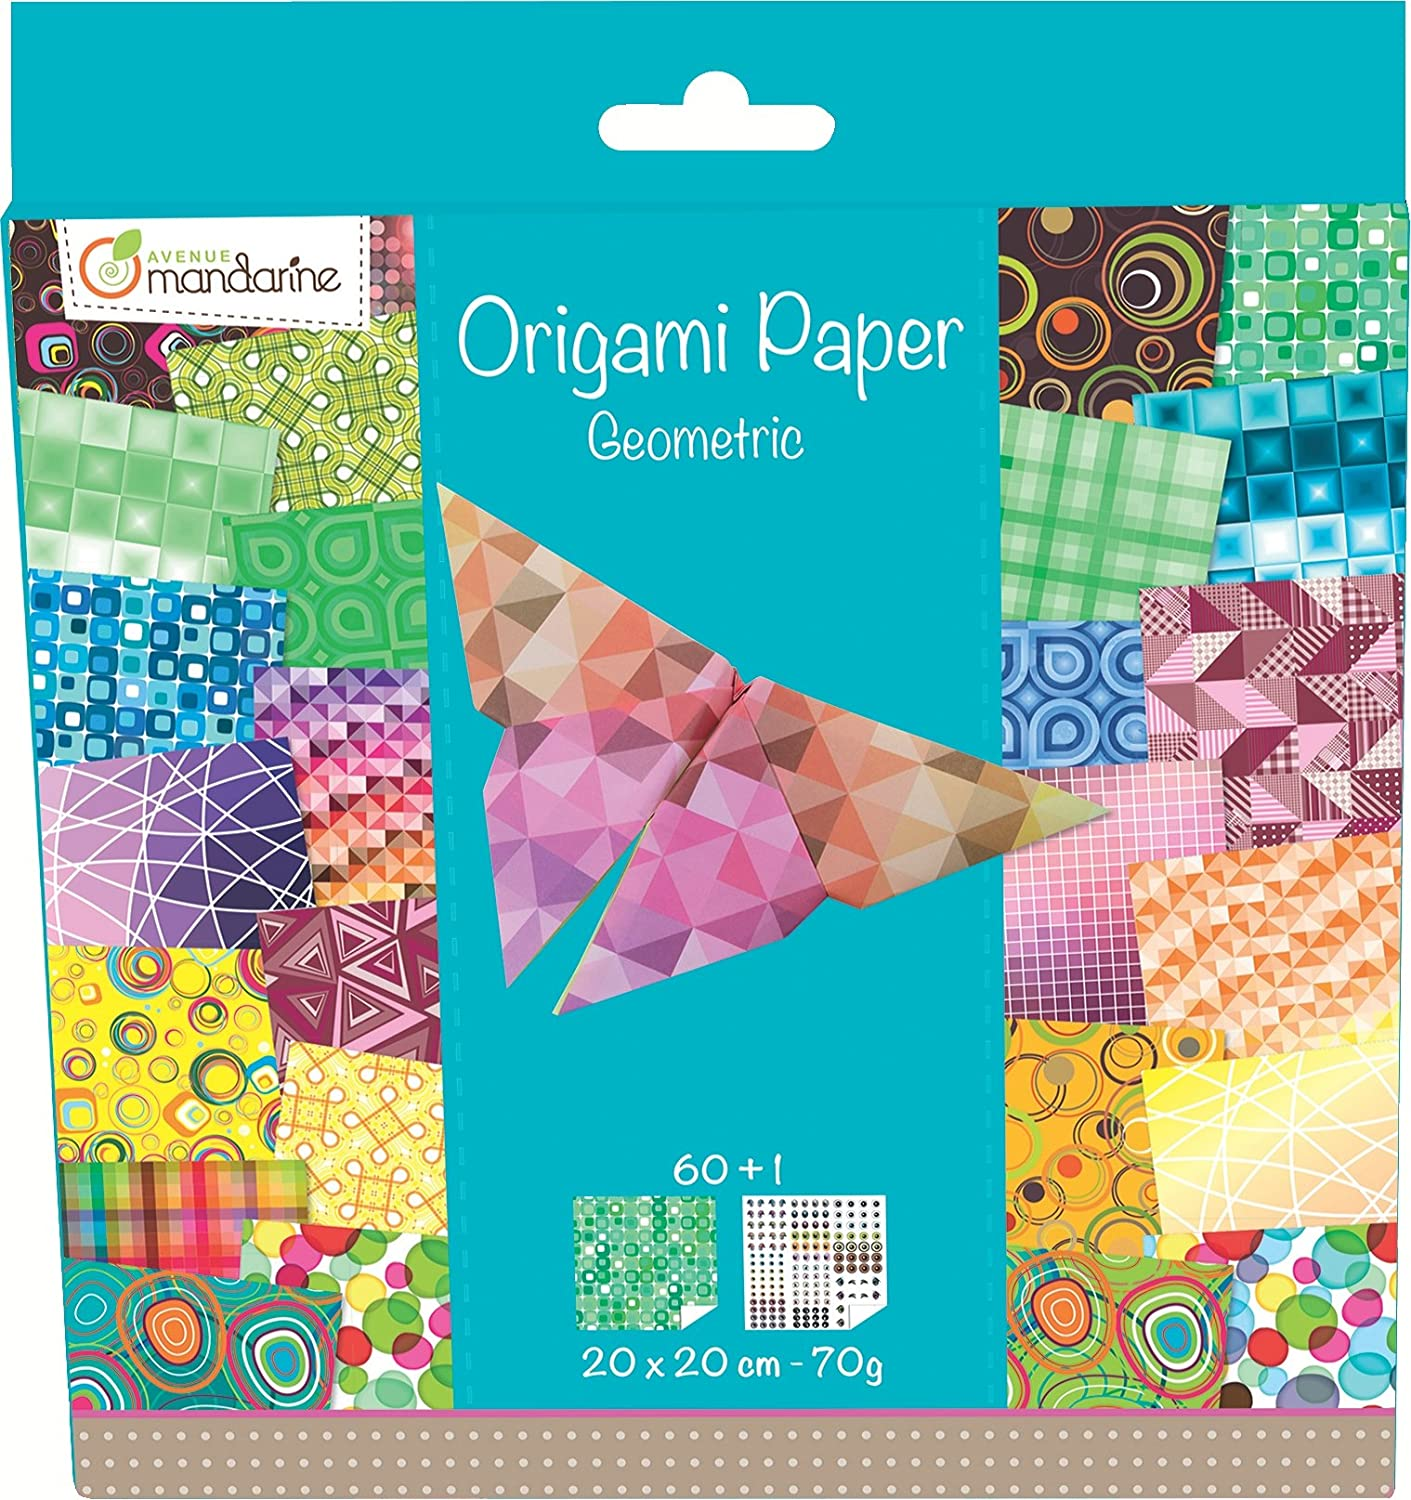 buy origami paper online uk College essay editor free paper buy online professional resume writing the best places to find origami paper online a leading online craft store in the uk.